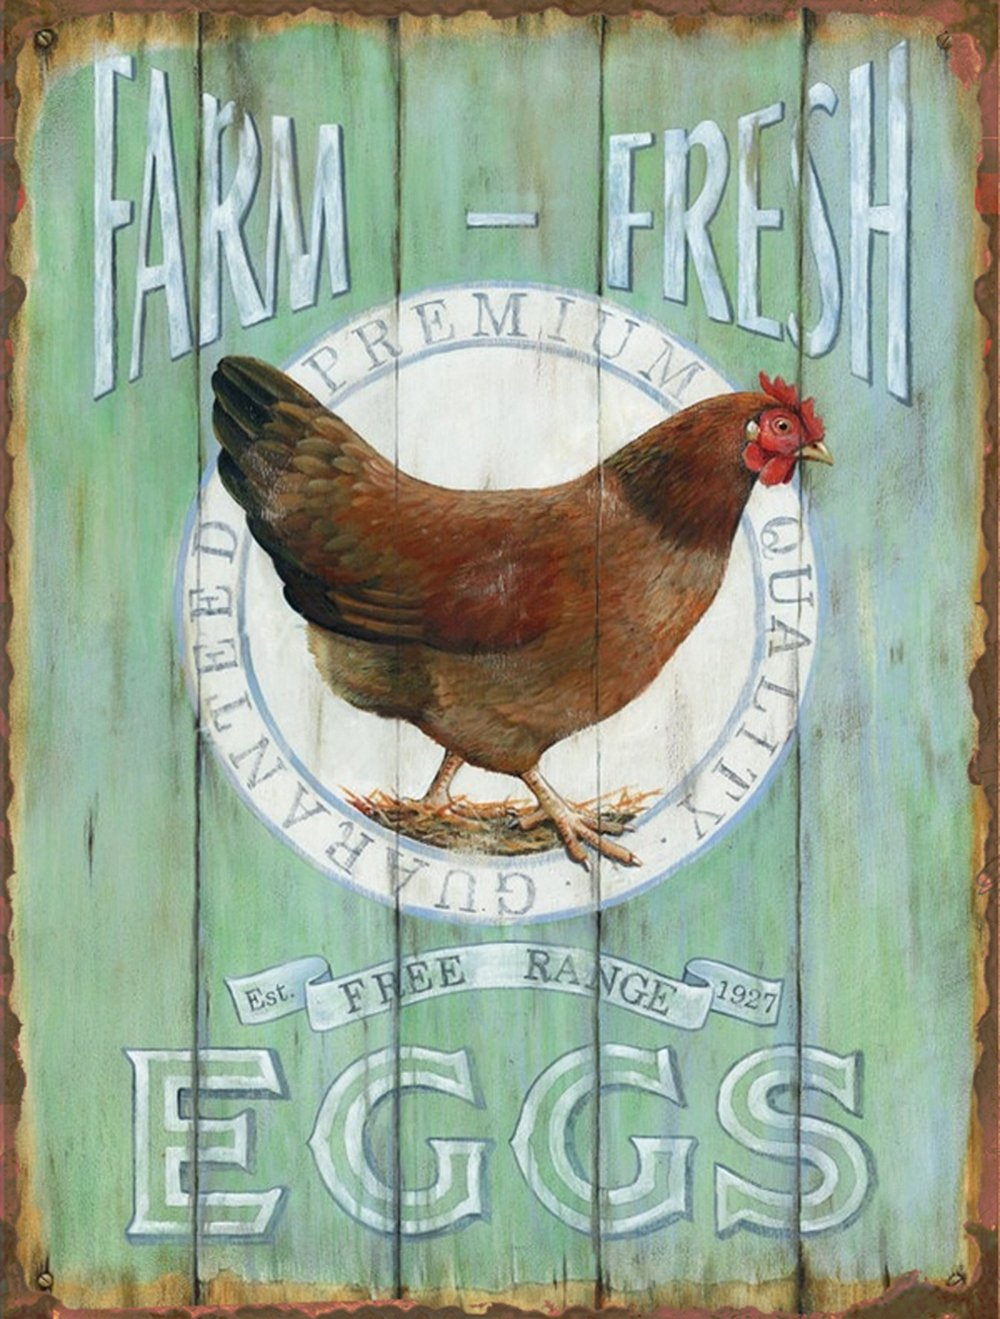 Farm Fresh Free Range Eggs Retro Vintage Tin Bar Sign